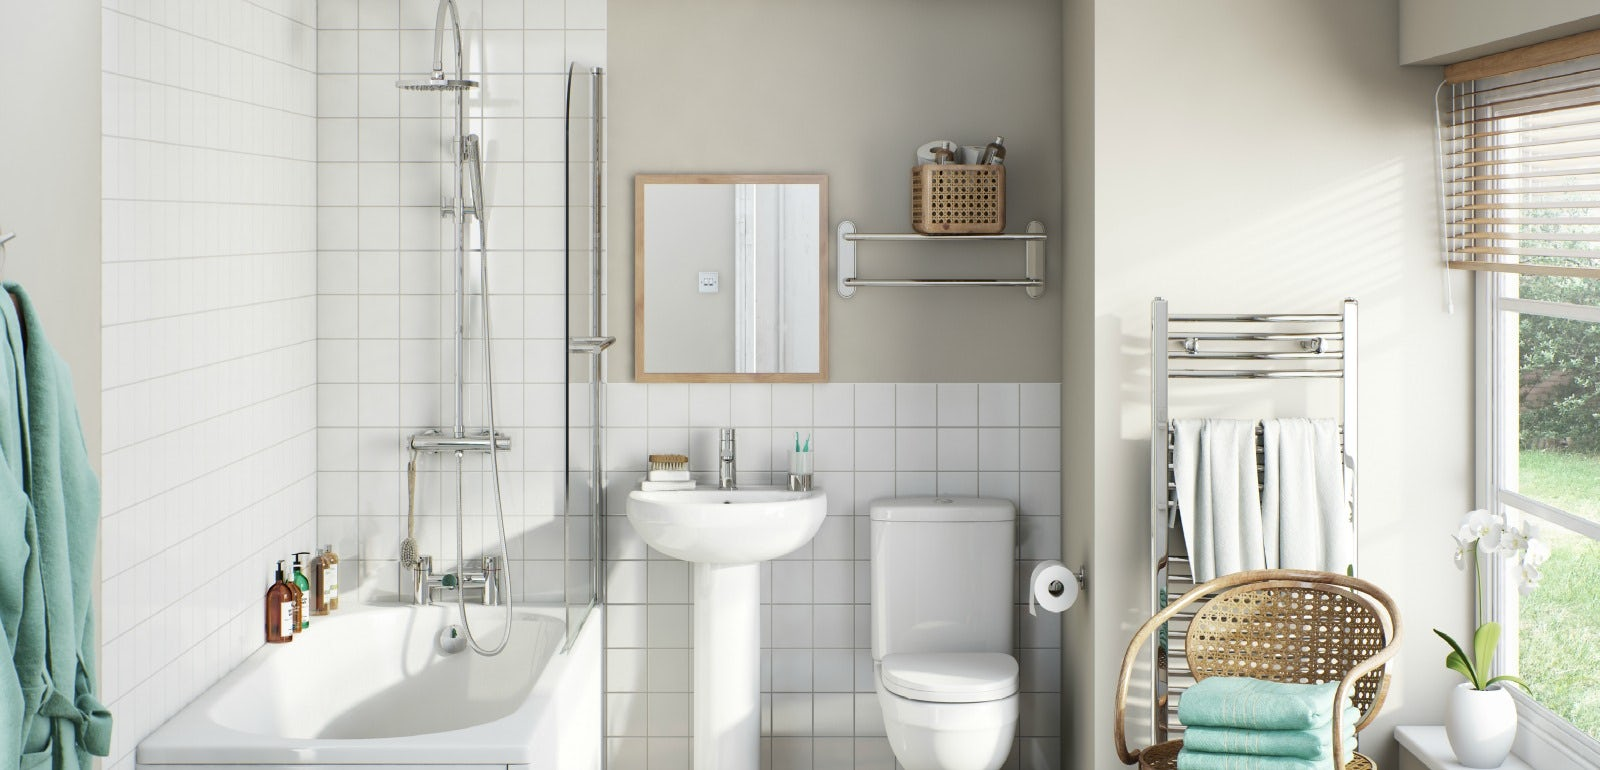 Awesome Bq Bathroom Suites With